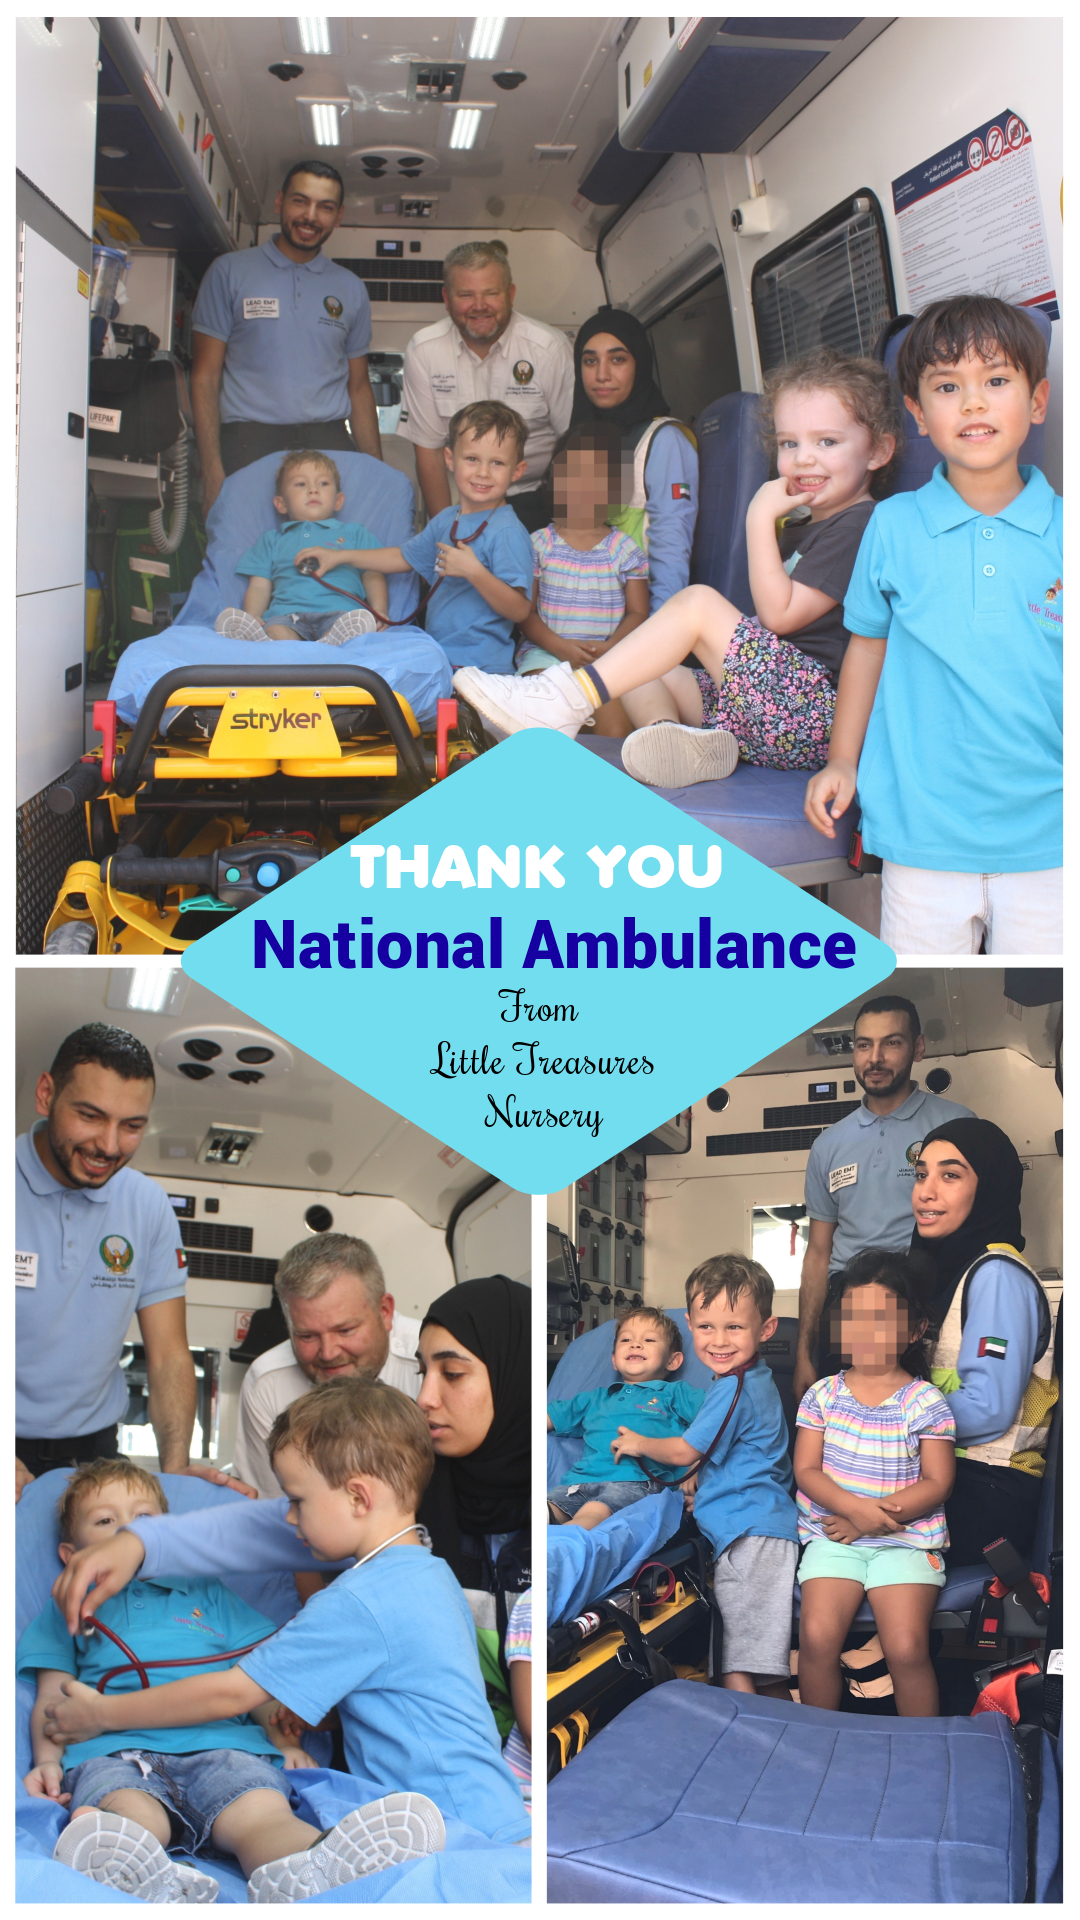 National Ambulance Sept 2019